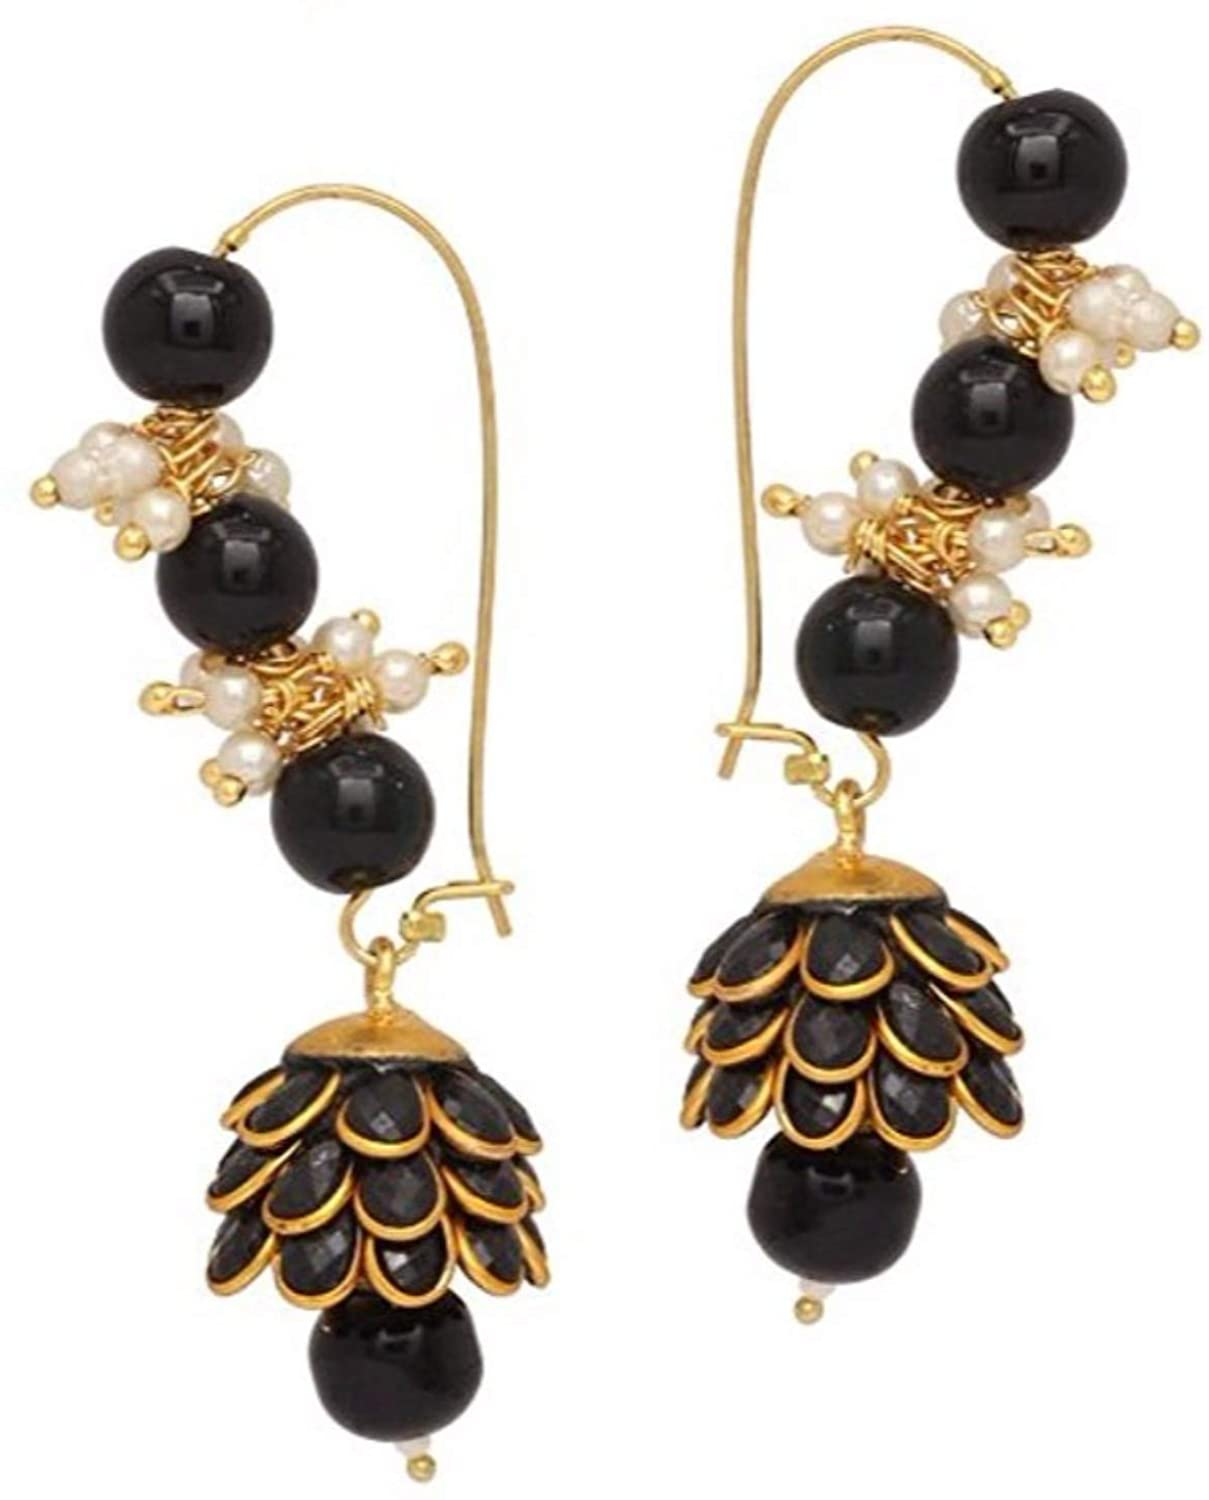 Ethnadore Indian Bollywood Gold Plated Faux Pearl Jhumki Jhumka Dangle Hoop Earrings Jewelry set